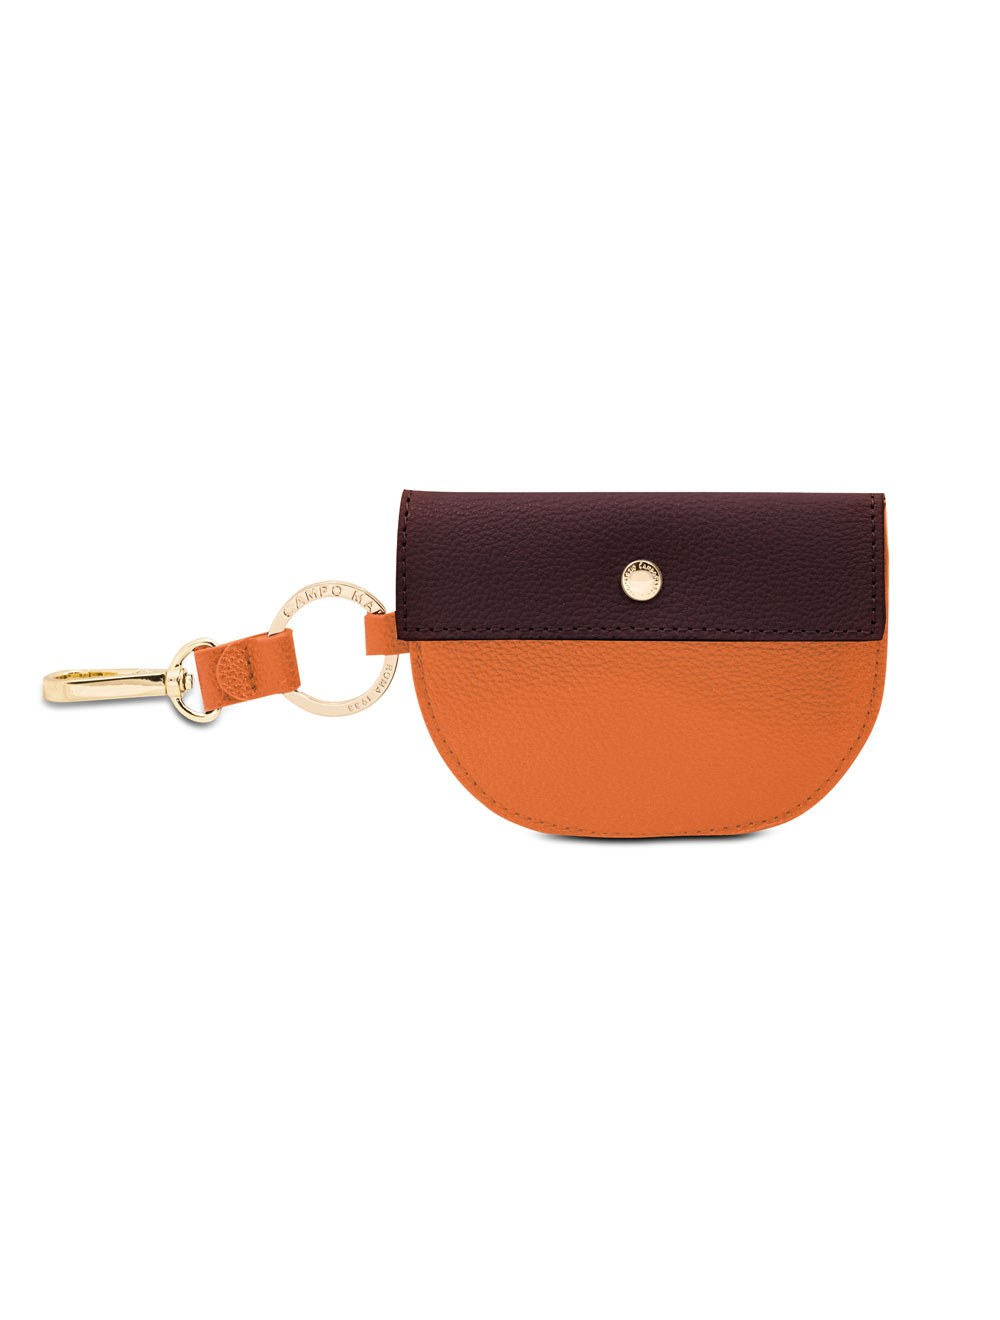 Snap coin holder - Apricot